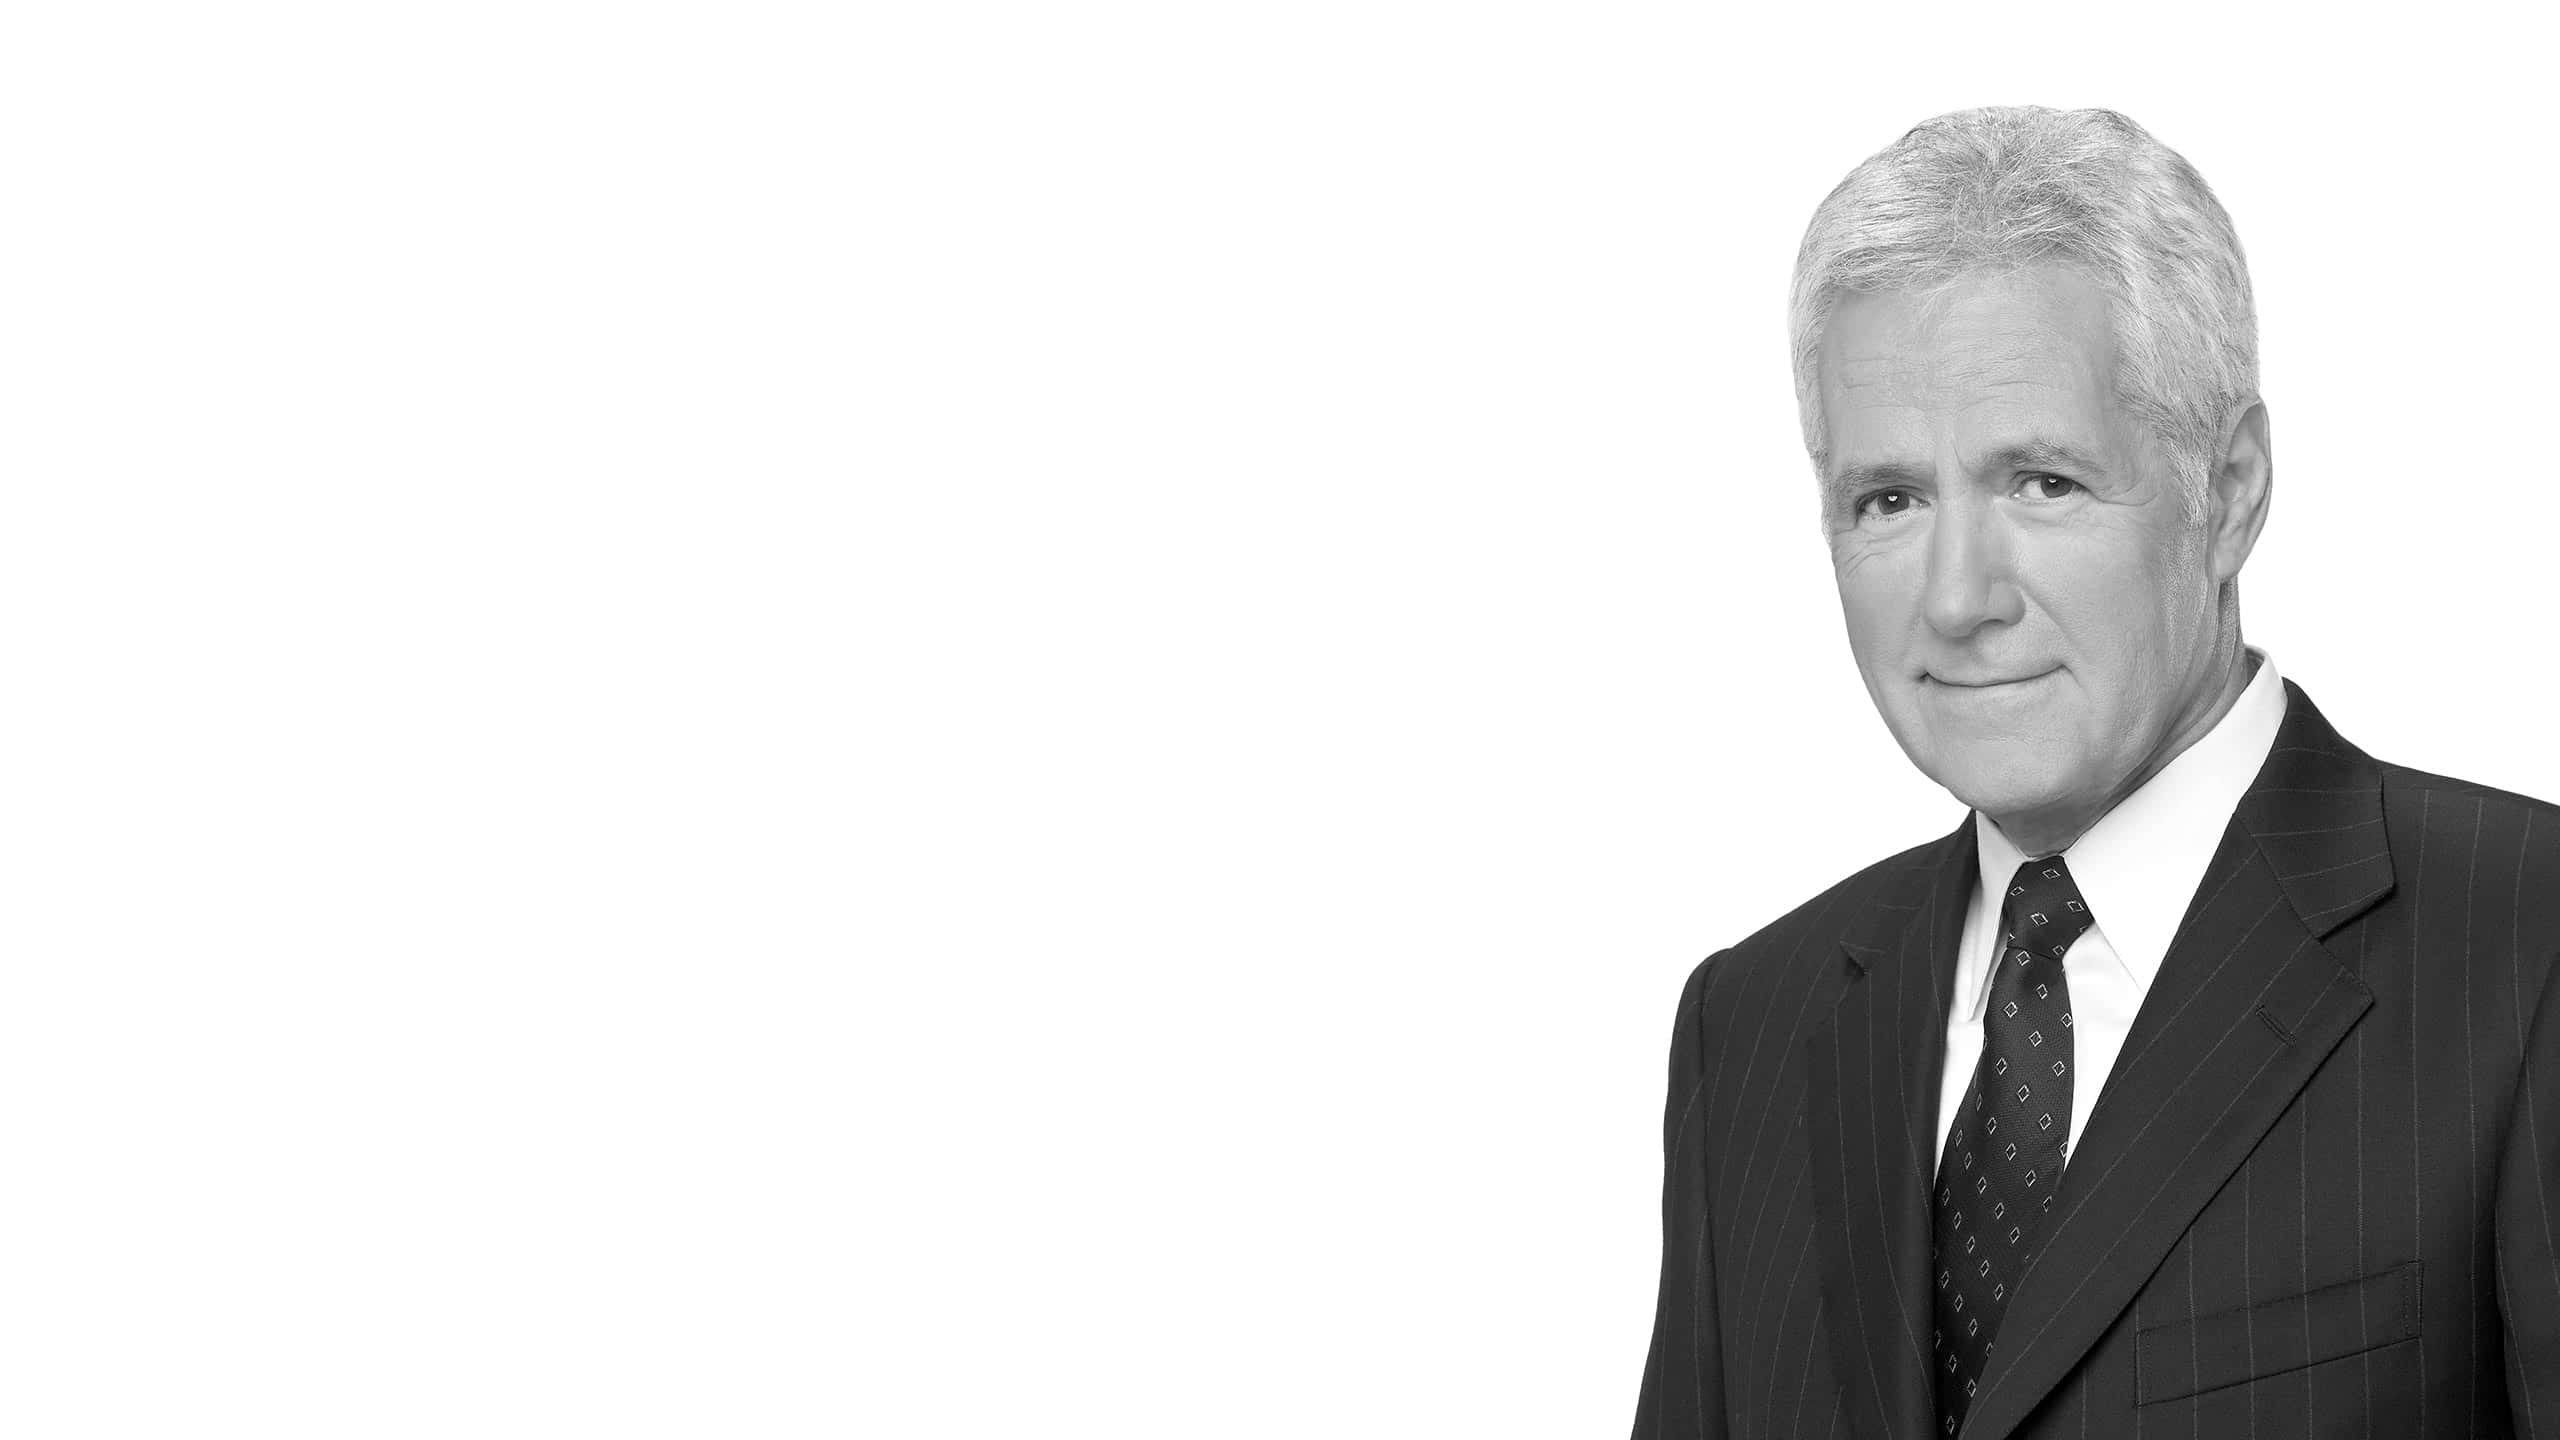 alex trebek portrait wqhd 1440p wallpaper